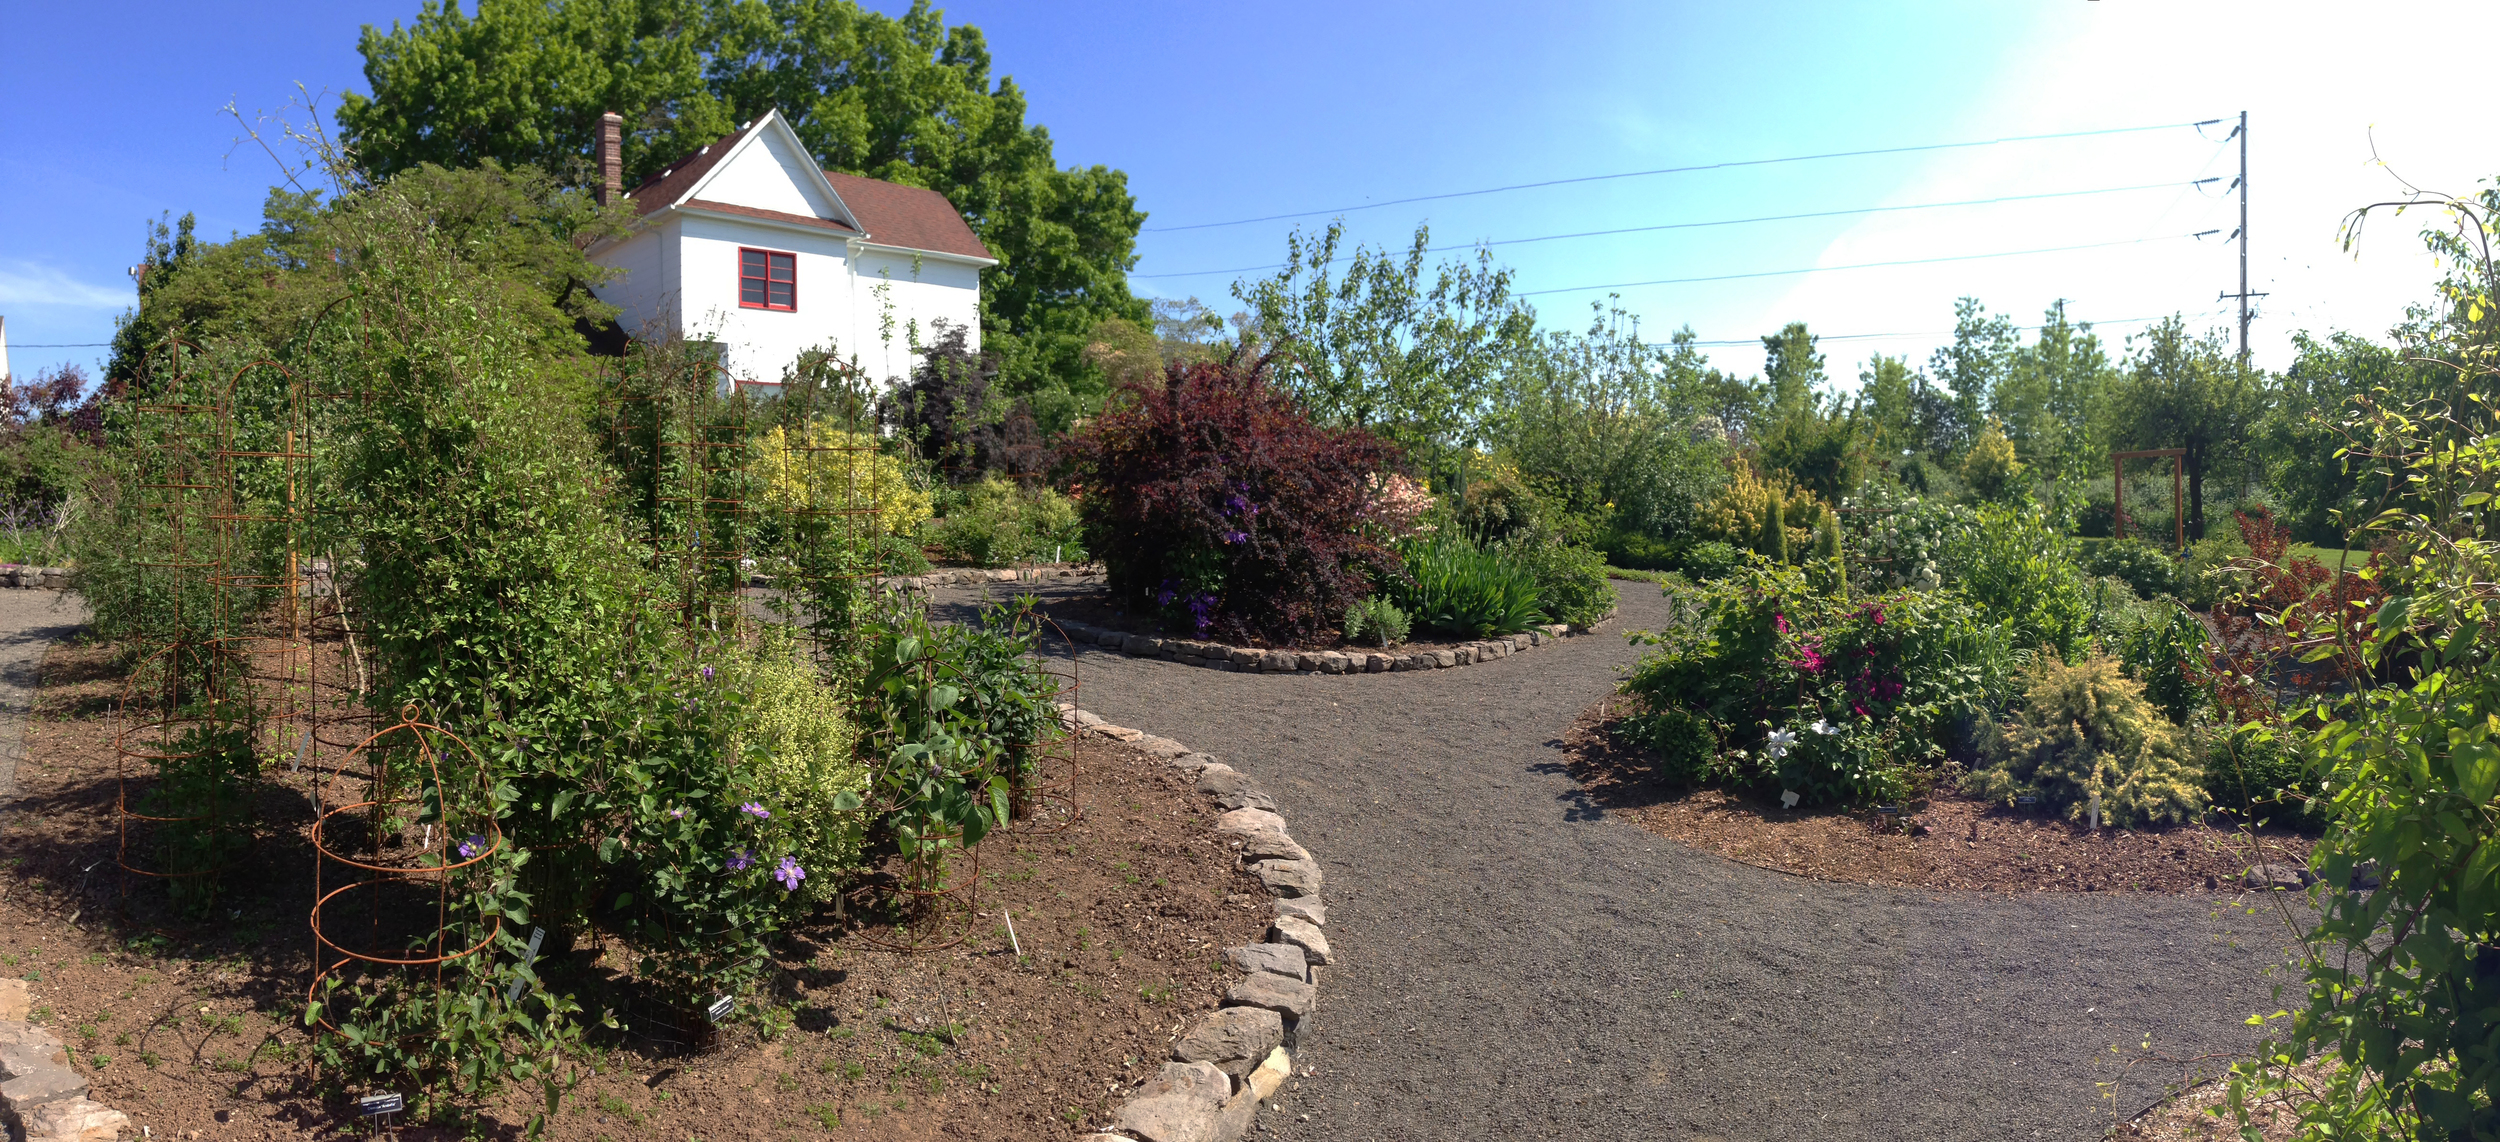 The Rogerson Clematis Collection is located at Luscher Farm, part of Lake Oswego's Parks and Recreation Department.